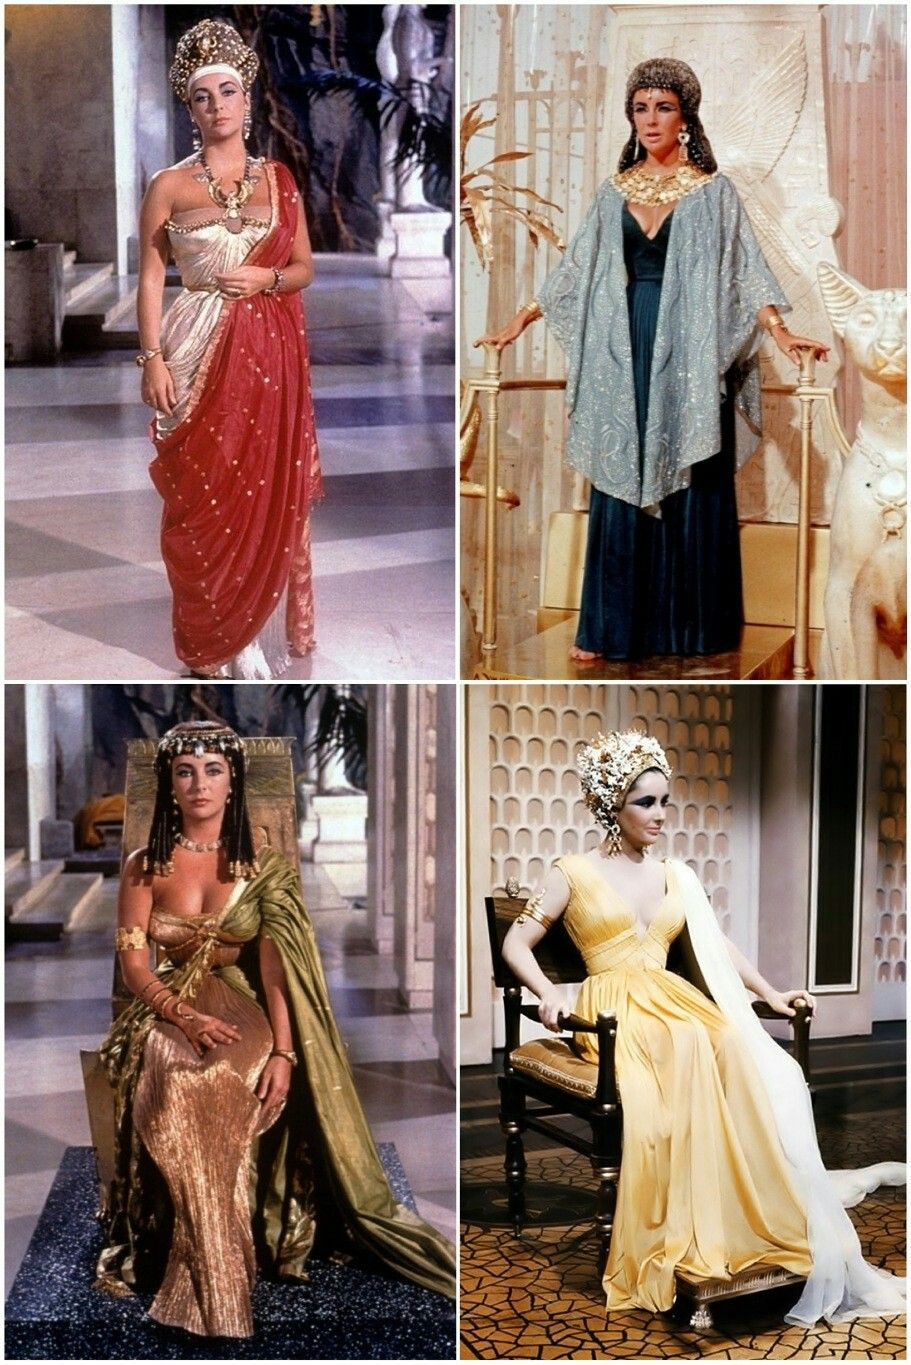 Cleopatra 1963 Costume Design By Renie Conley Vittorio Nino Novarese And Irene Sharaff Egyptian Fashion Elizabeth Taylor Cleopatra Hollywood Costume